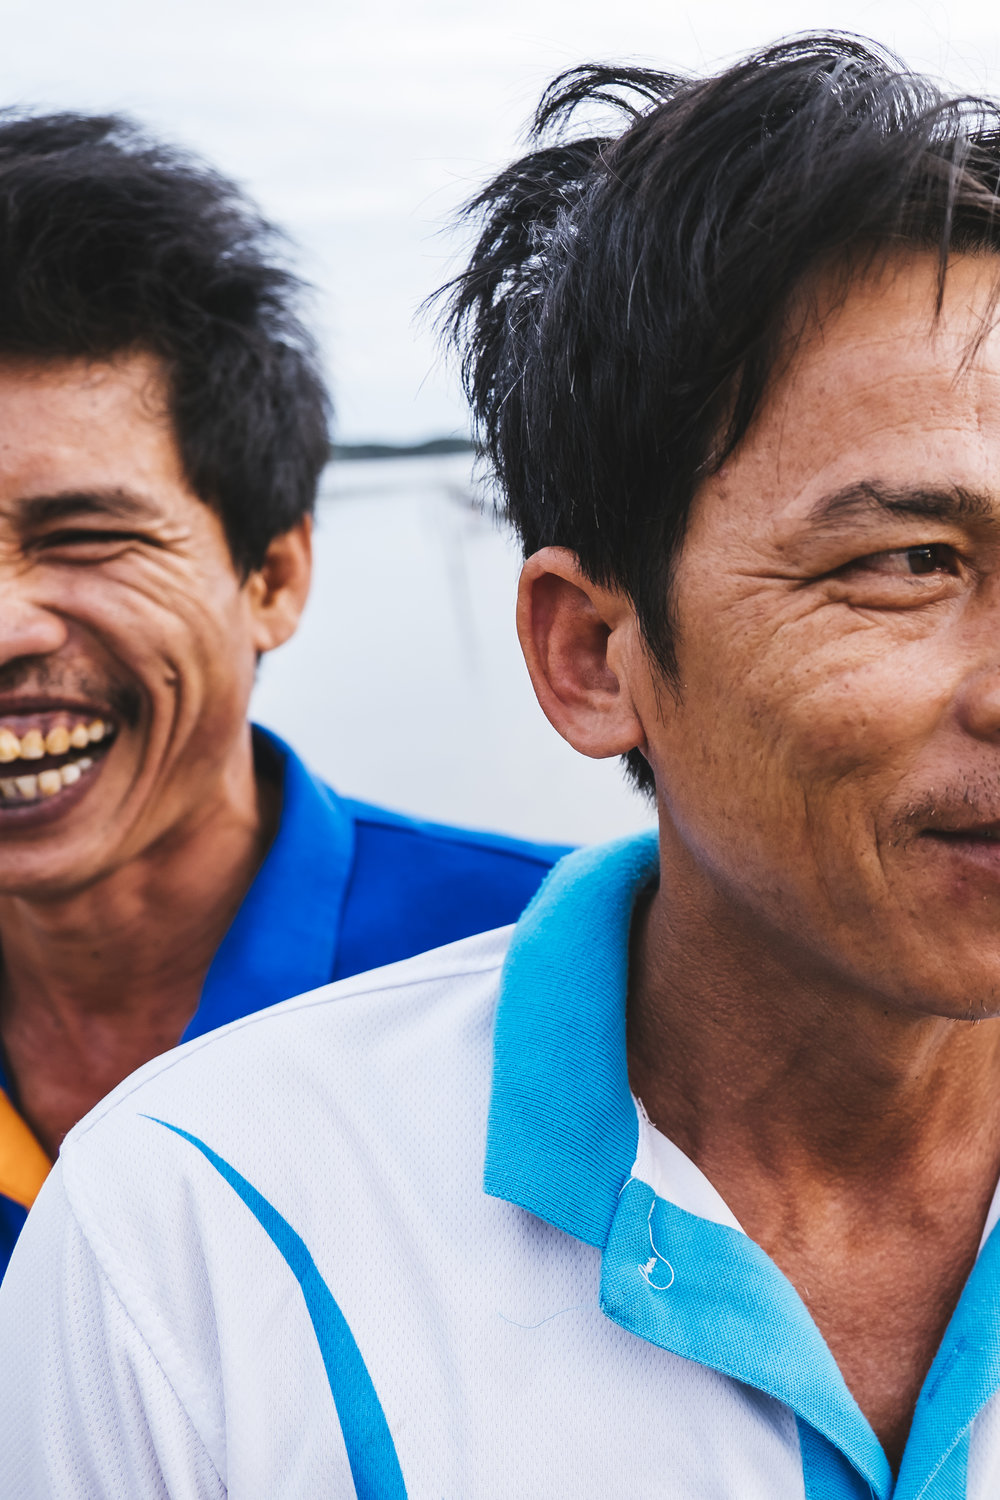 Vietnam dudes laughing